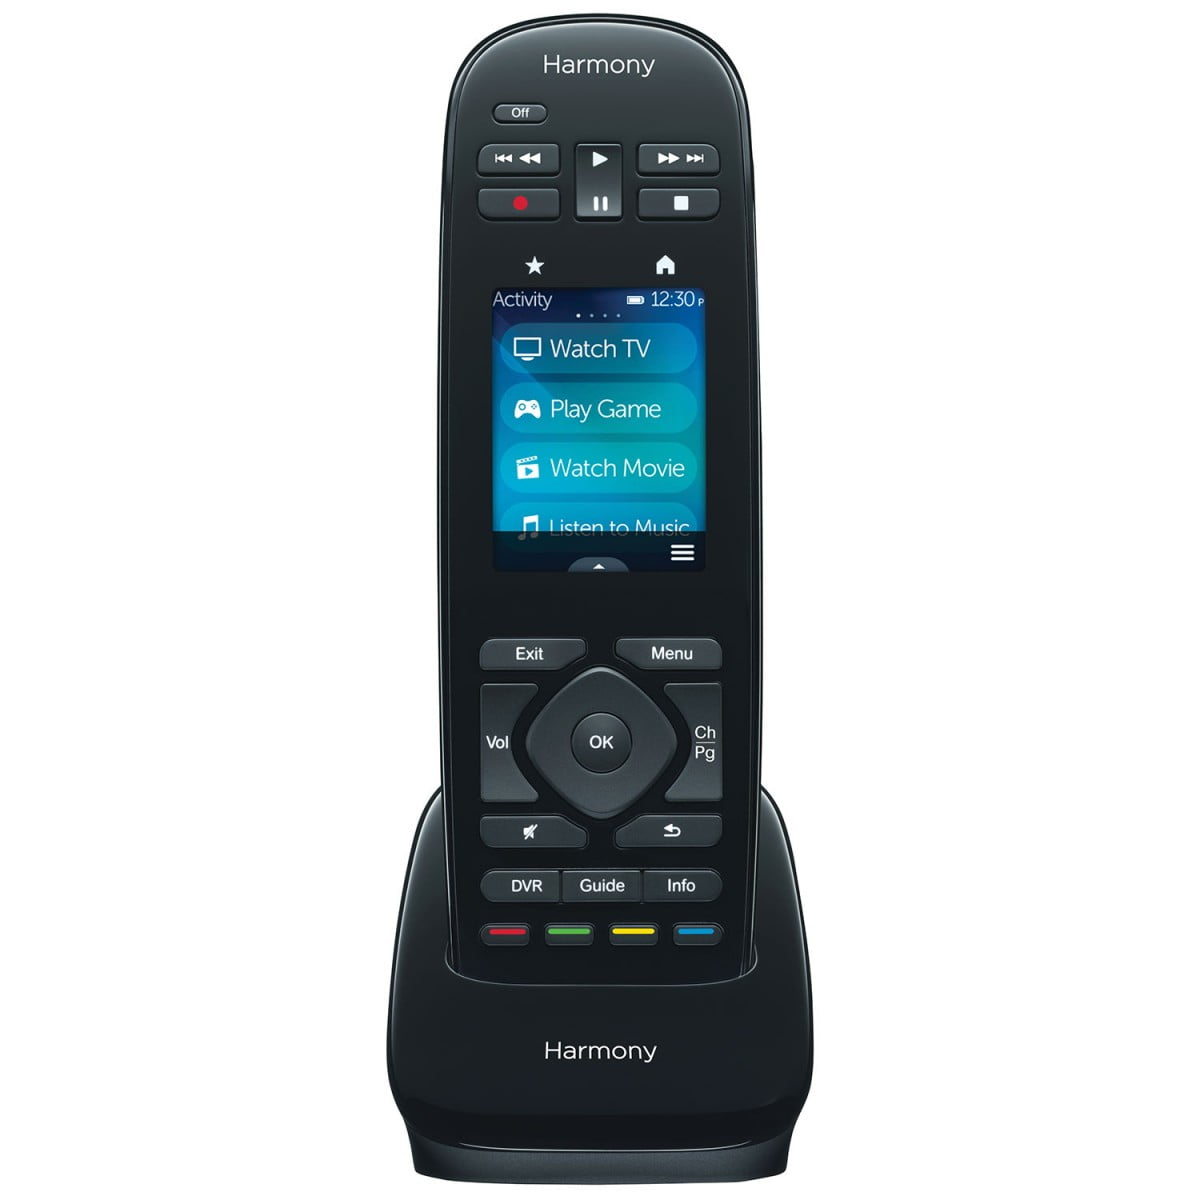 logitech harmony ultimate one touchscreen remote control. Black Bedroom Furniture Sets. Home Design Ideas